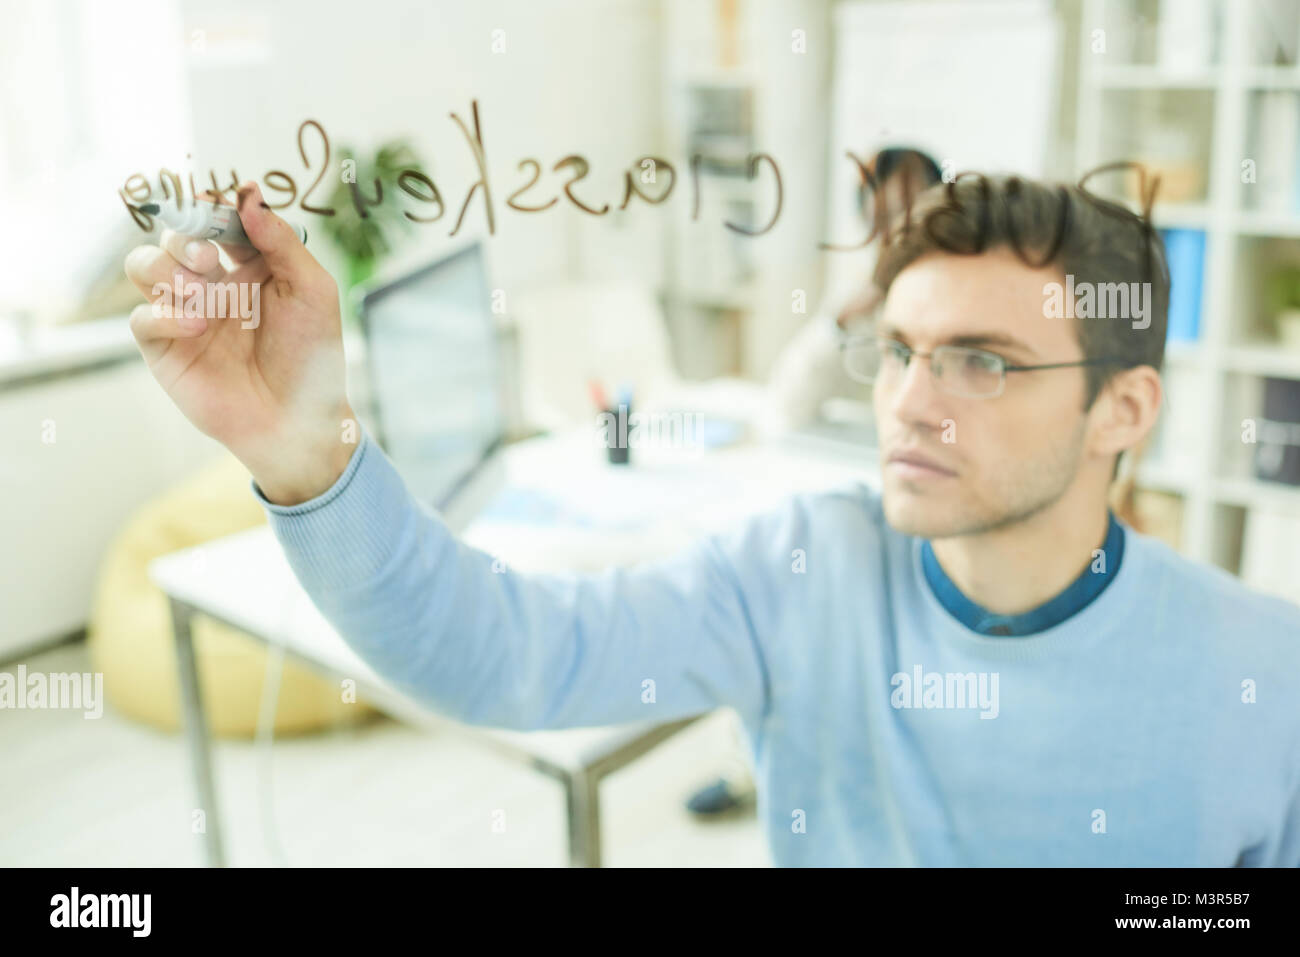 IT Professional Writing on Glass Wall - Stock Image